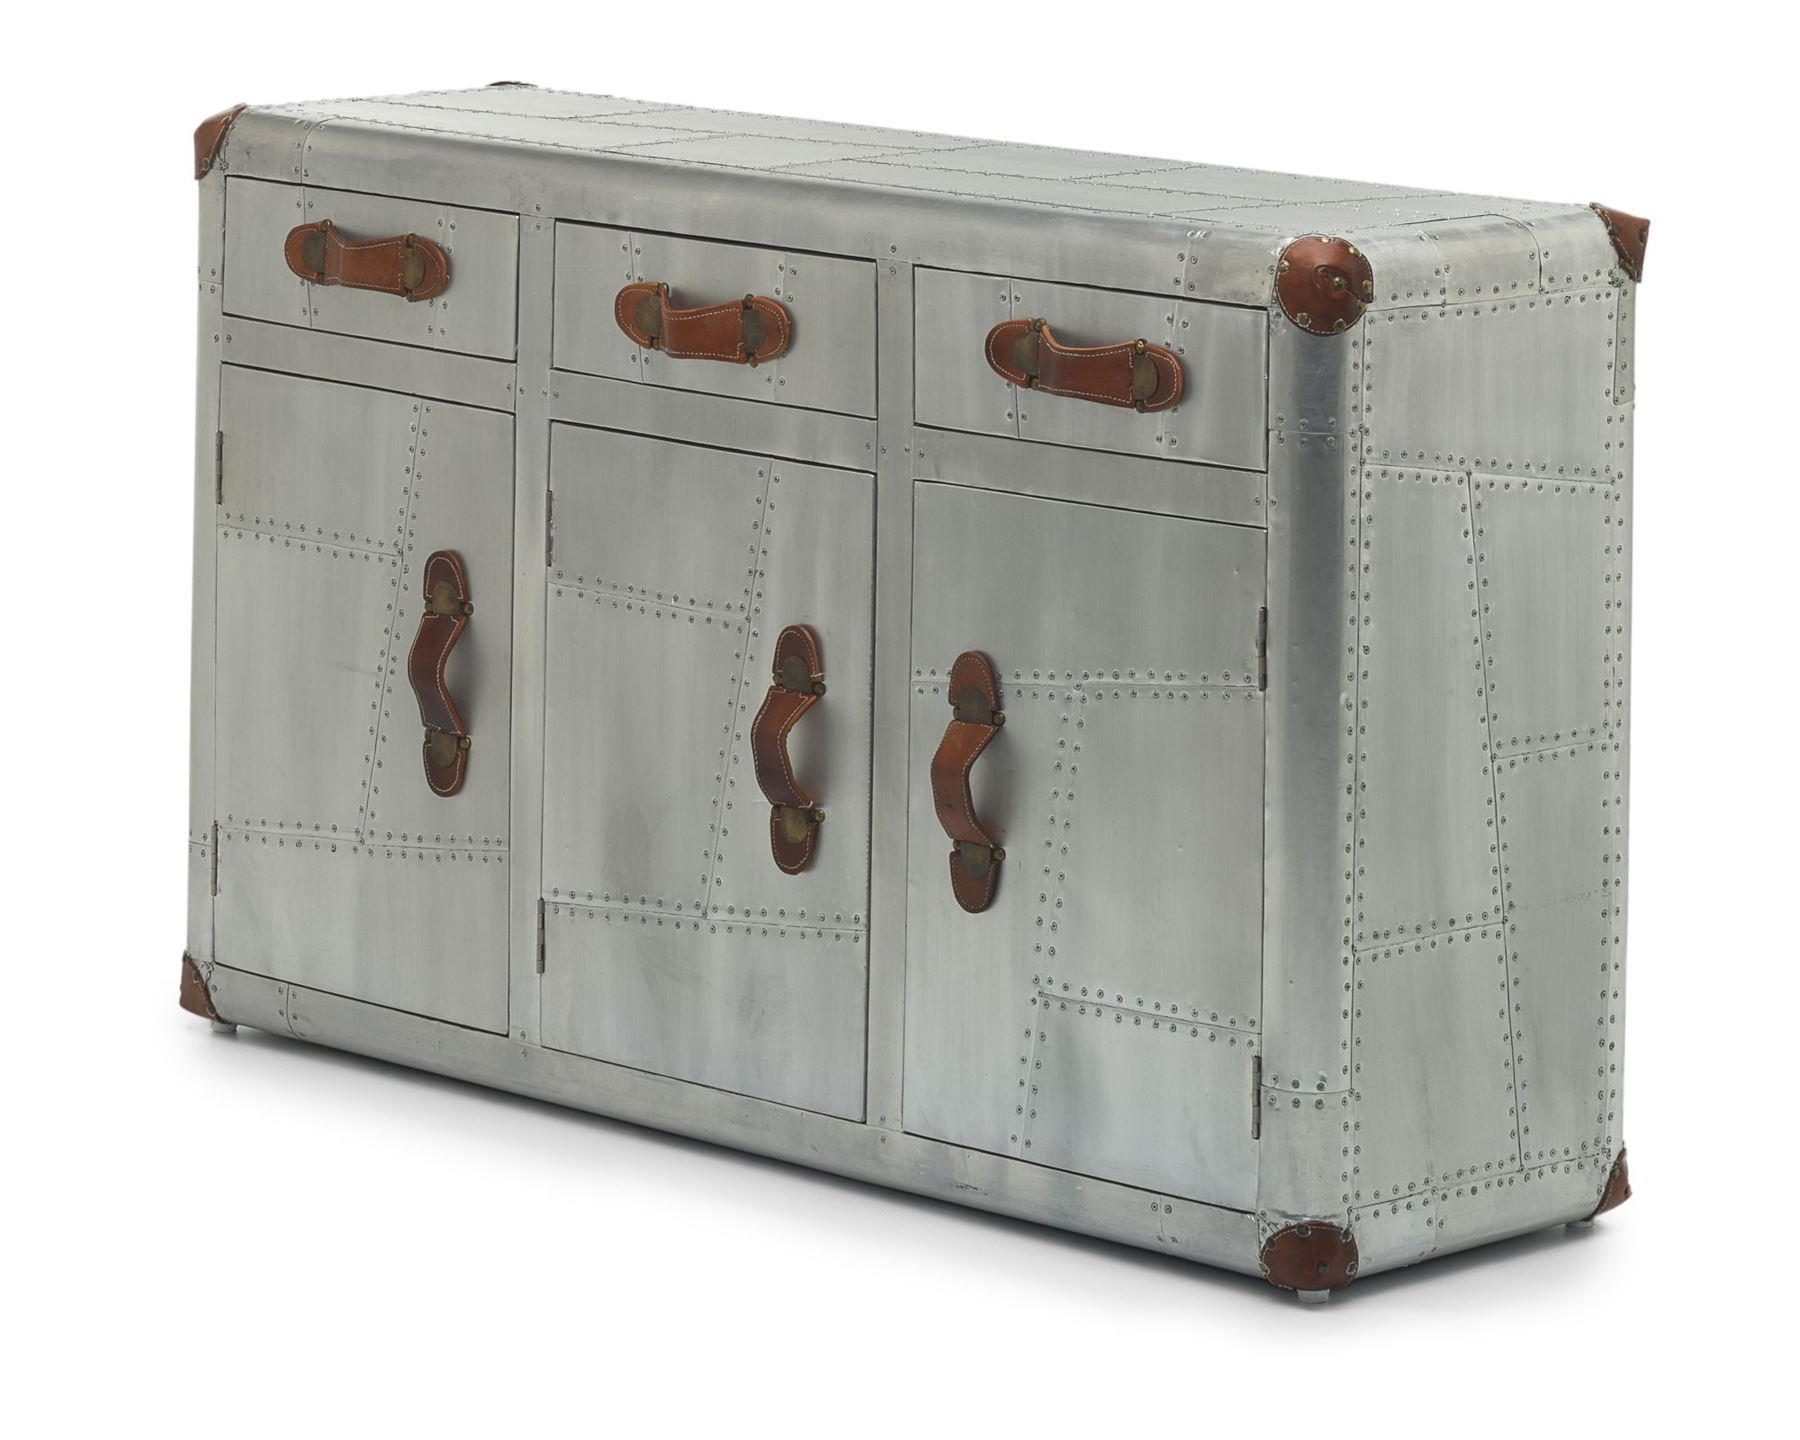 Widely Used Industrial 3 Drawer 3 Door Sideboards Intended For Aviator 3 Door Sideboard – Aviation Inspired Design – Industrial (Gallery 8 of 20)